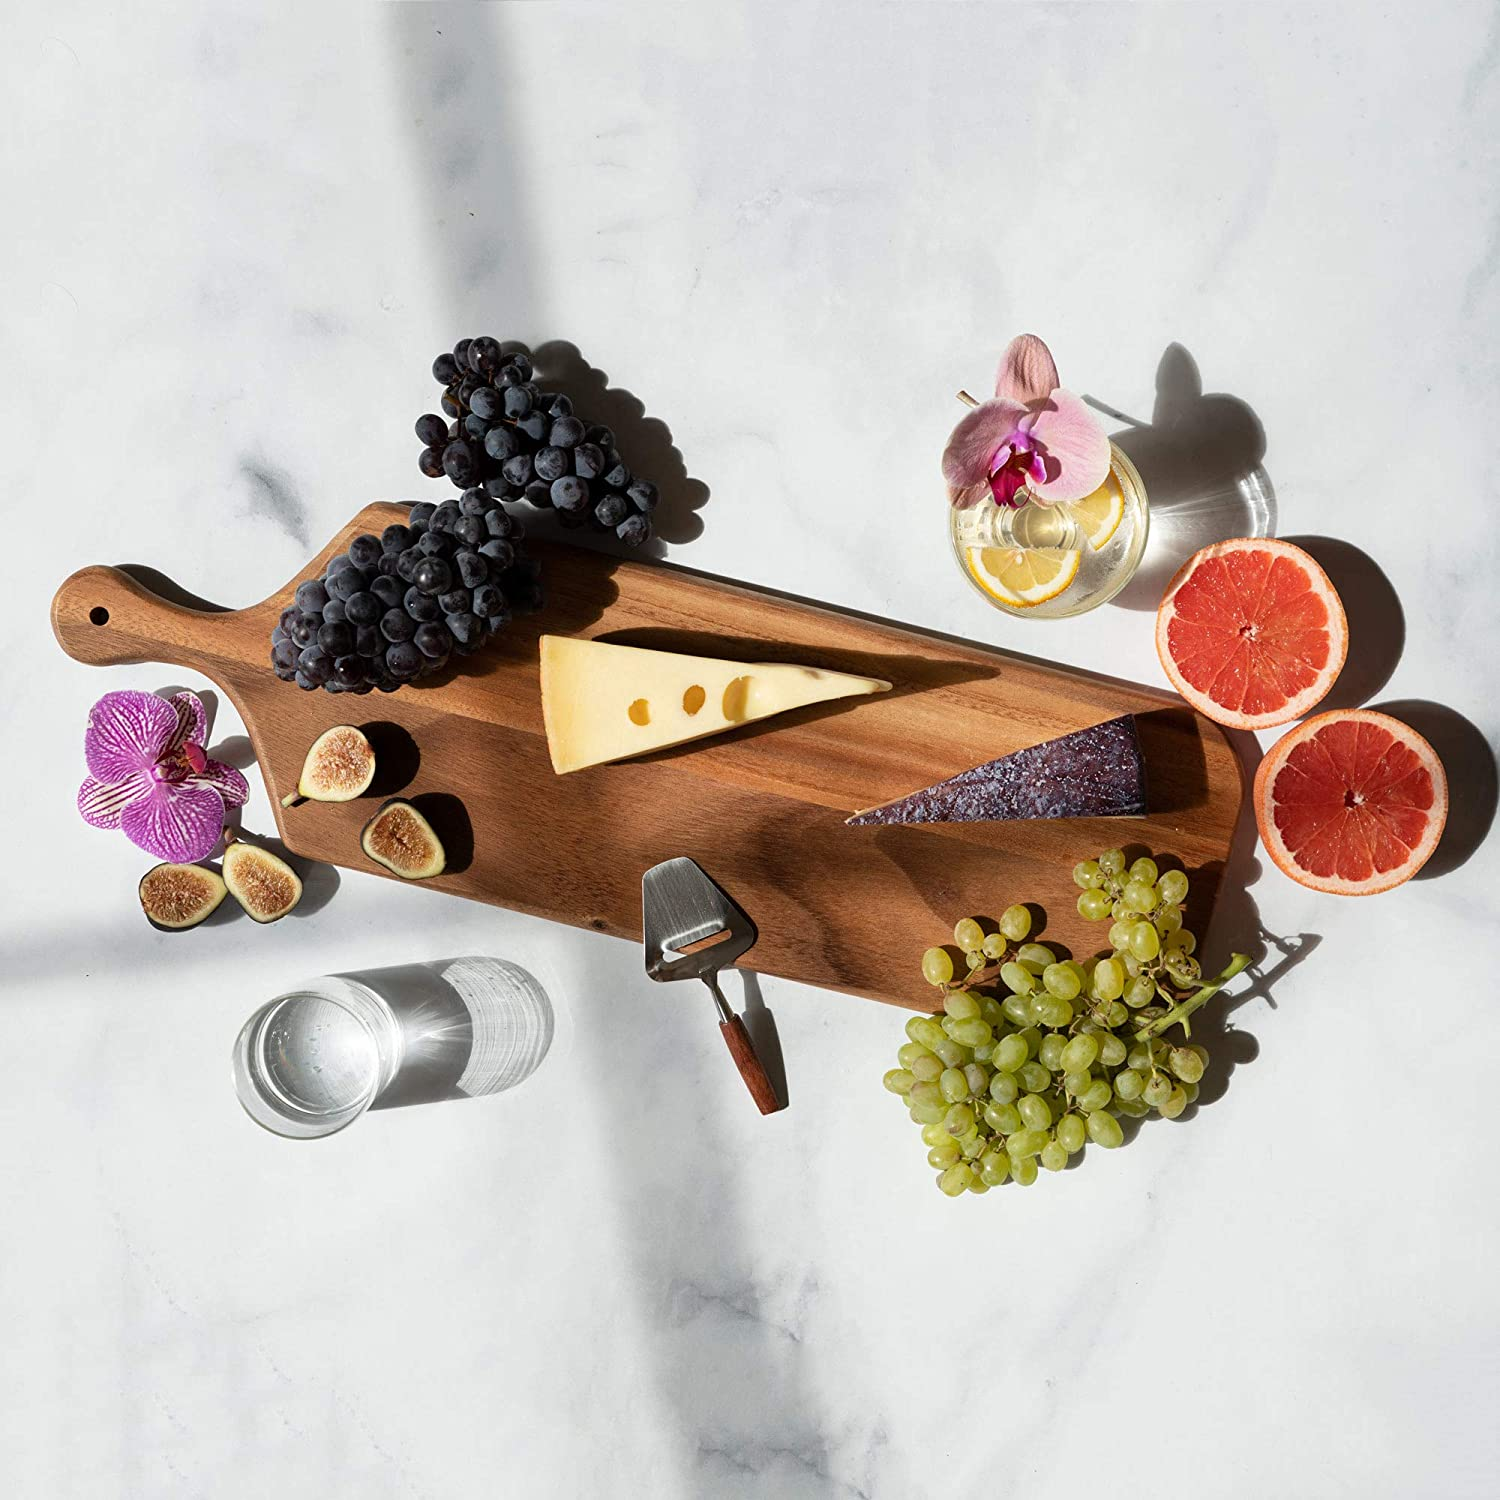 Amazon Com Villa Acacia Long Wooden Cheese Board 23 X 7 Inch Serving Tray And Charcuterie Board Platters